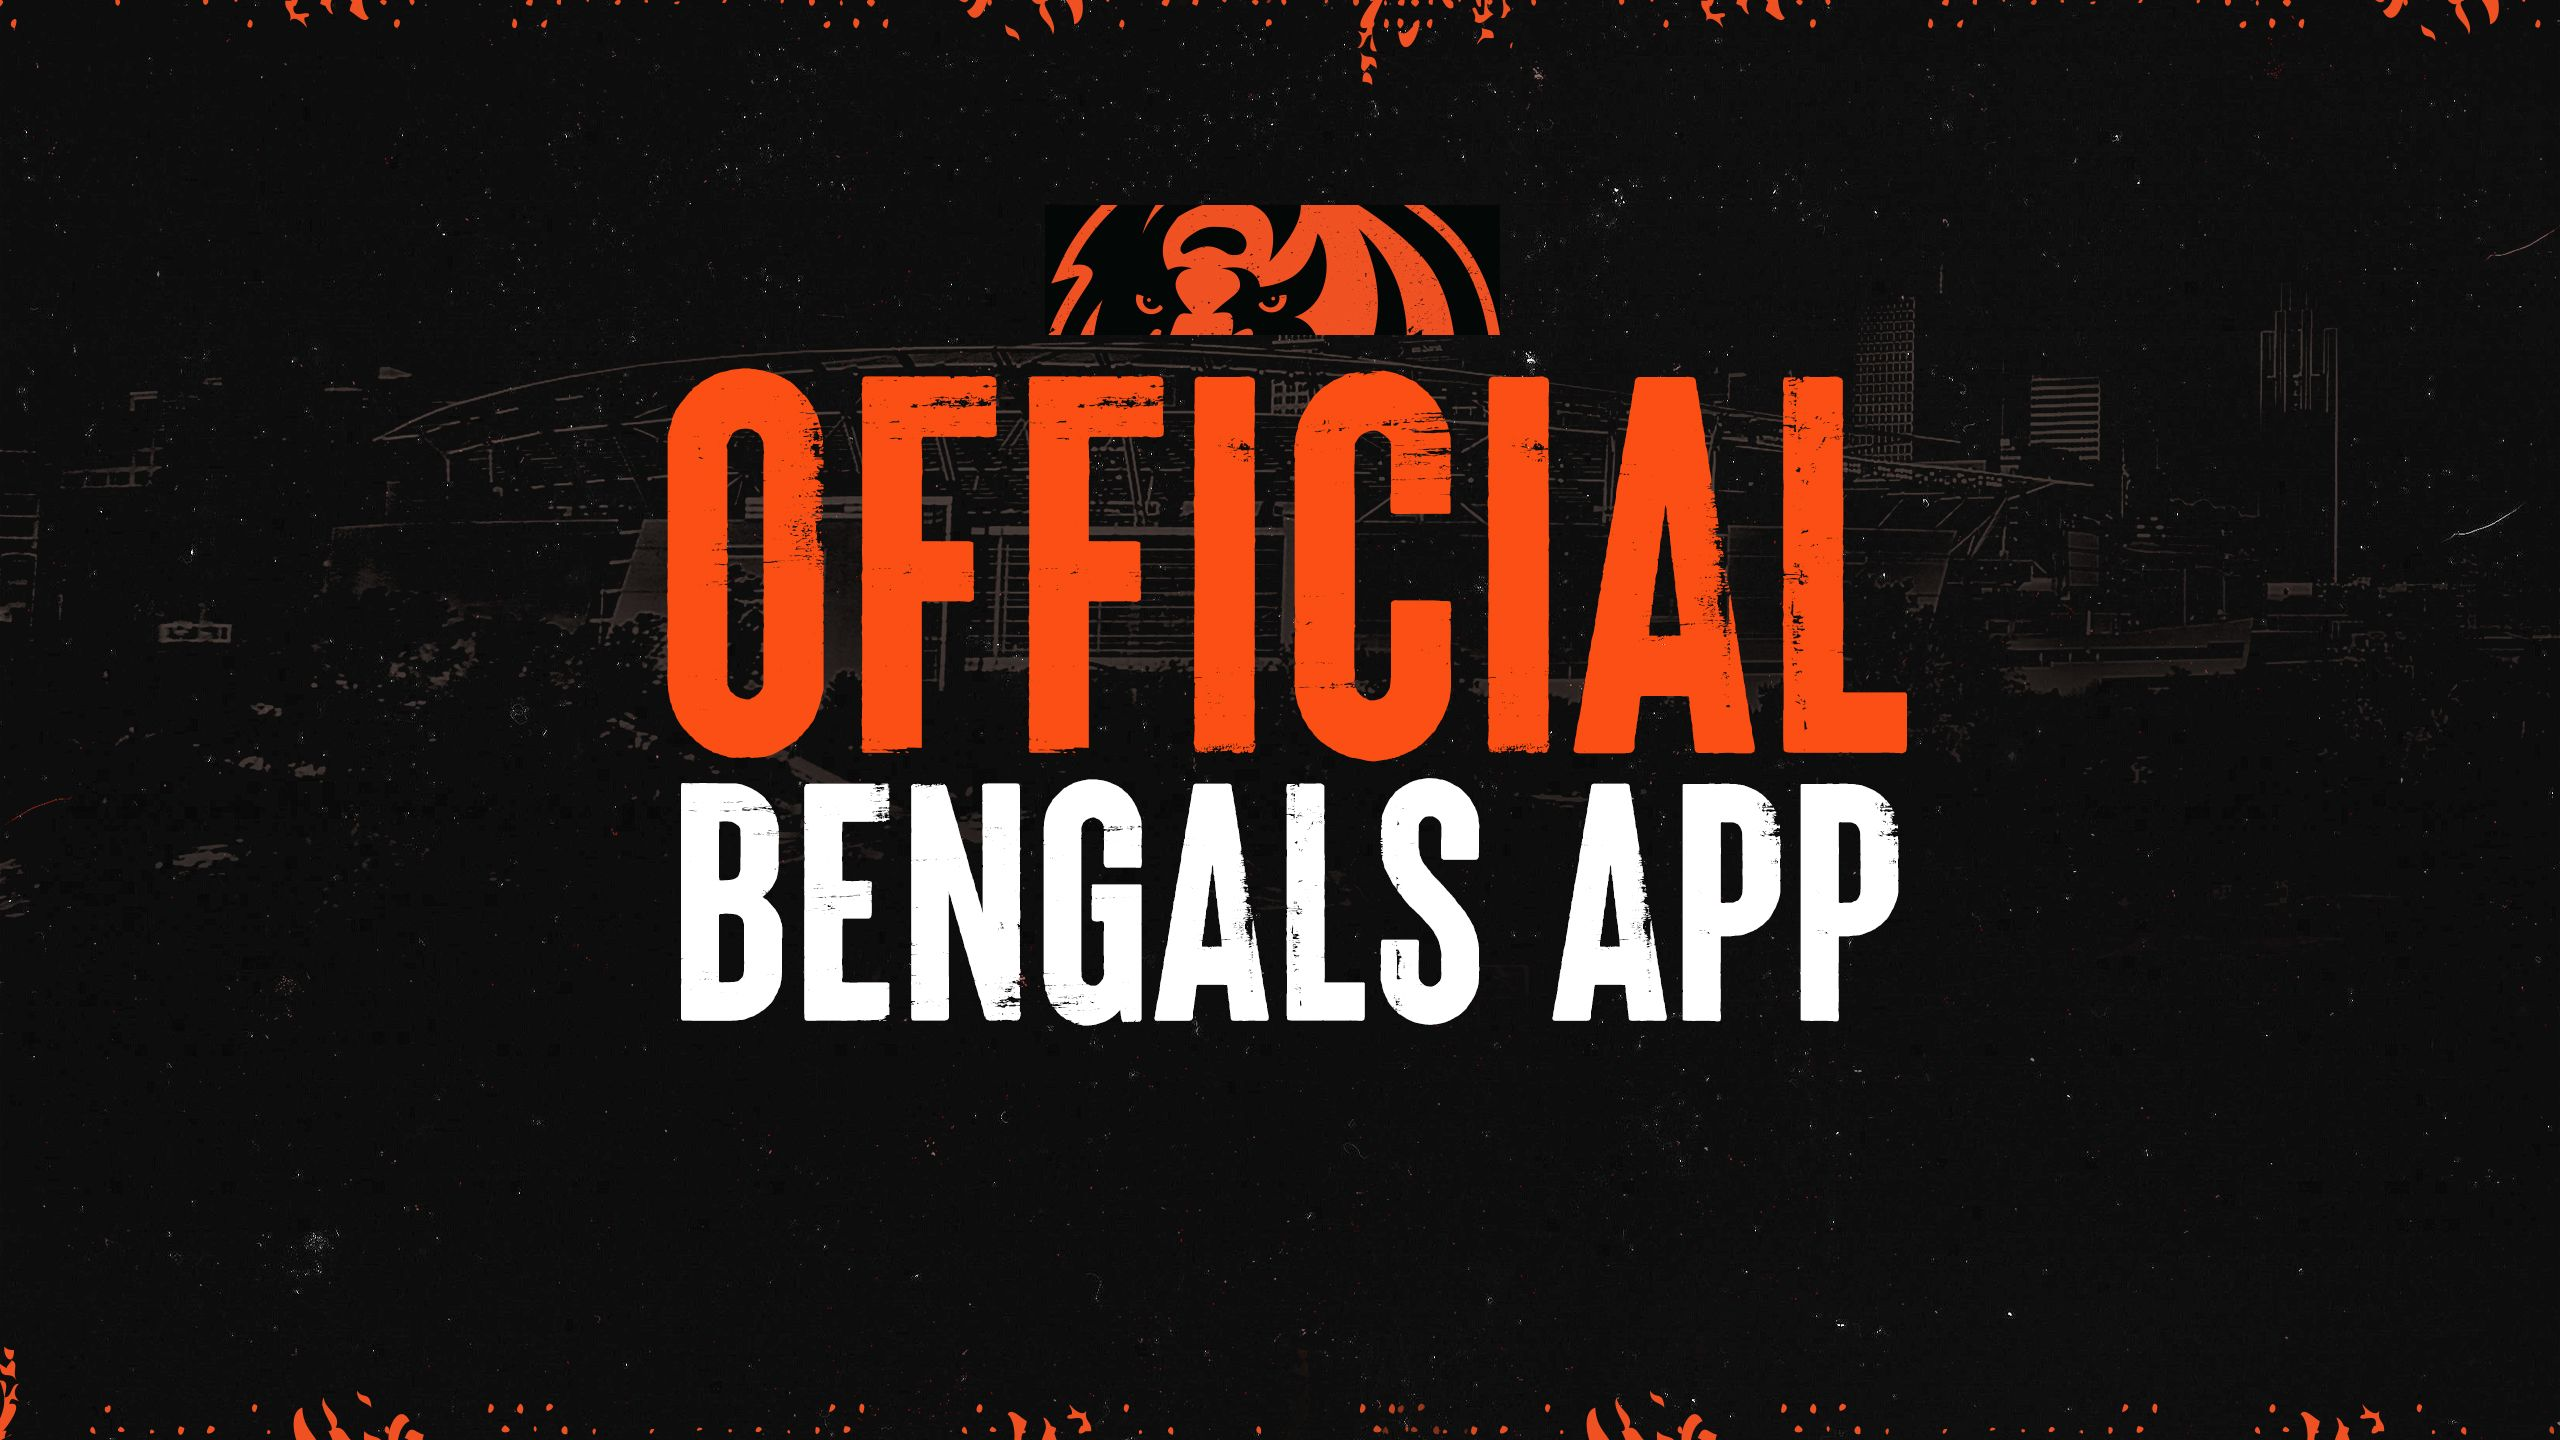 Download The Official Bengals App